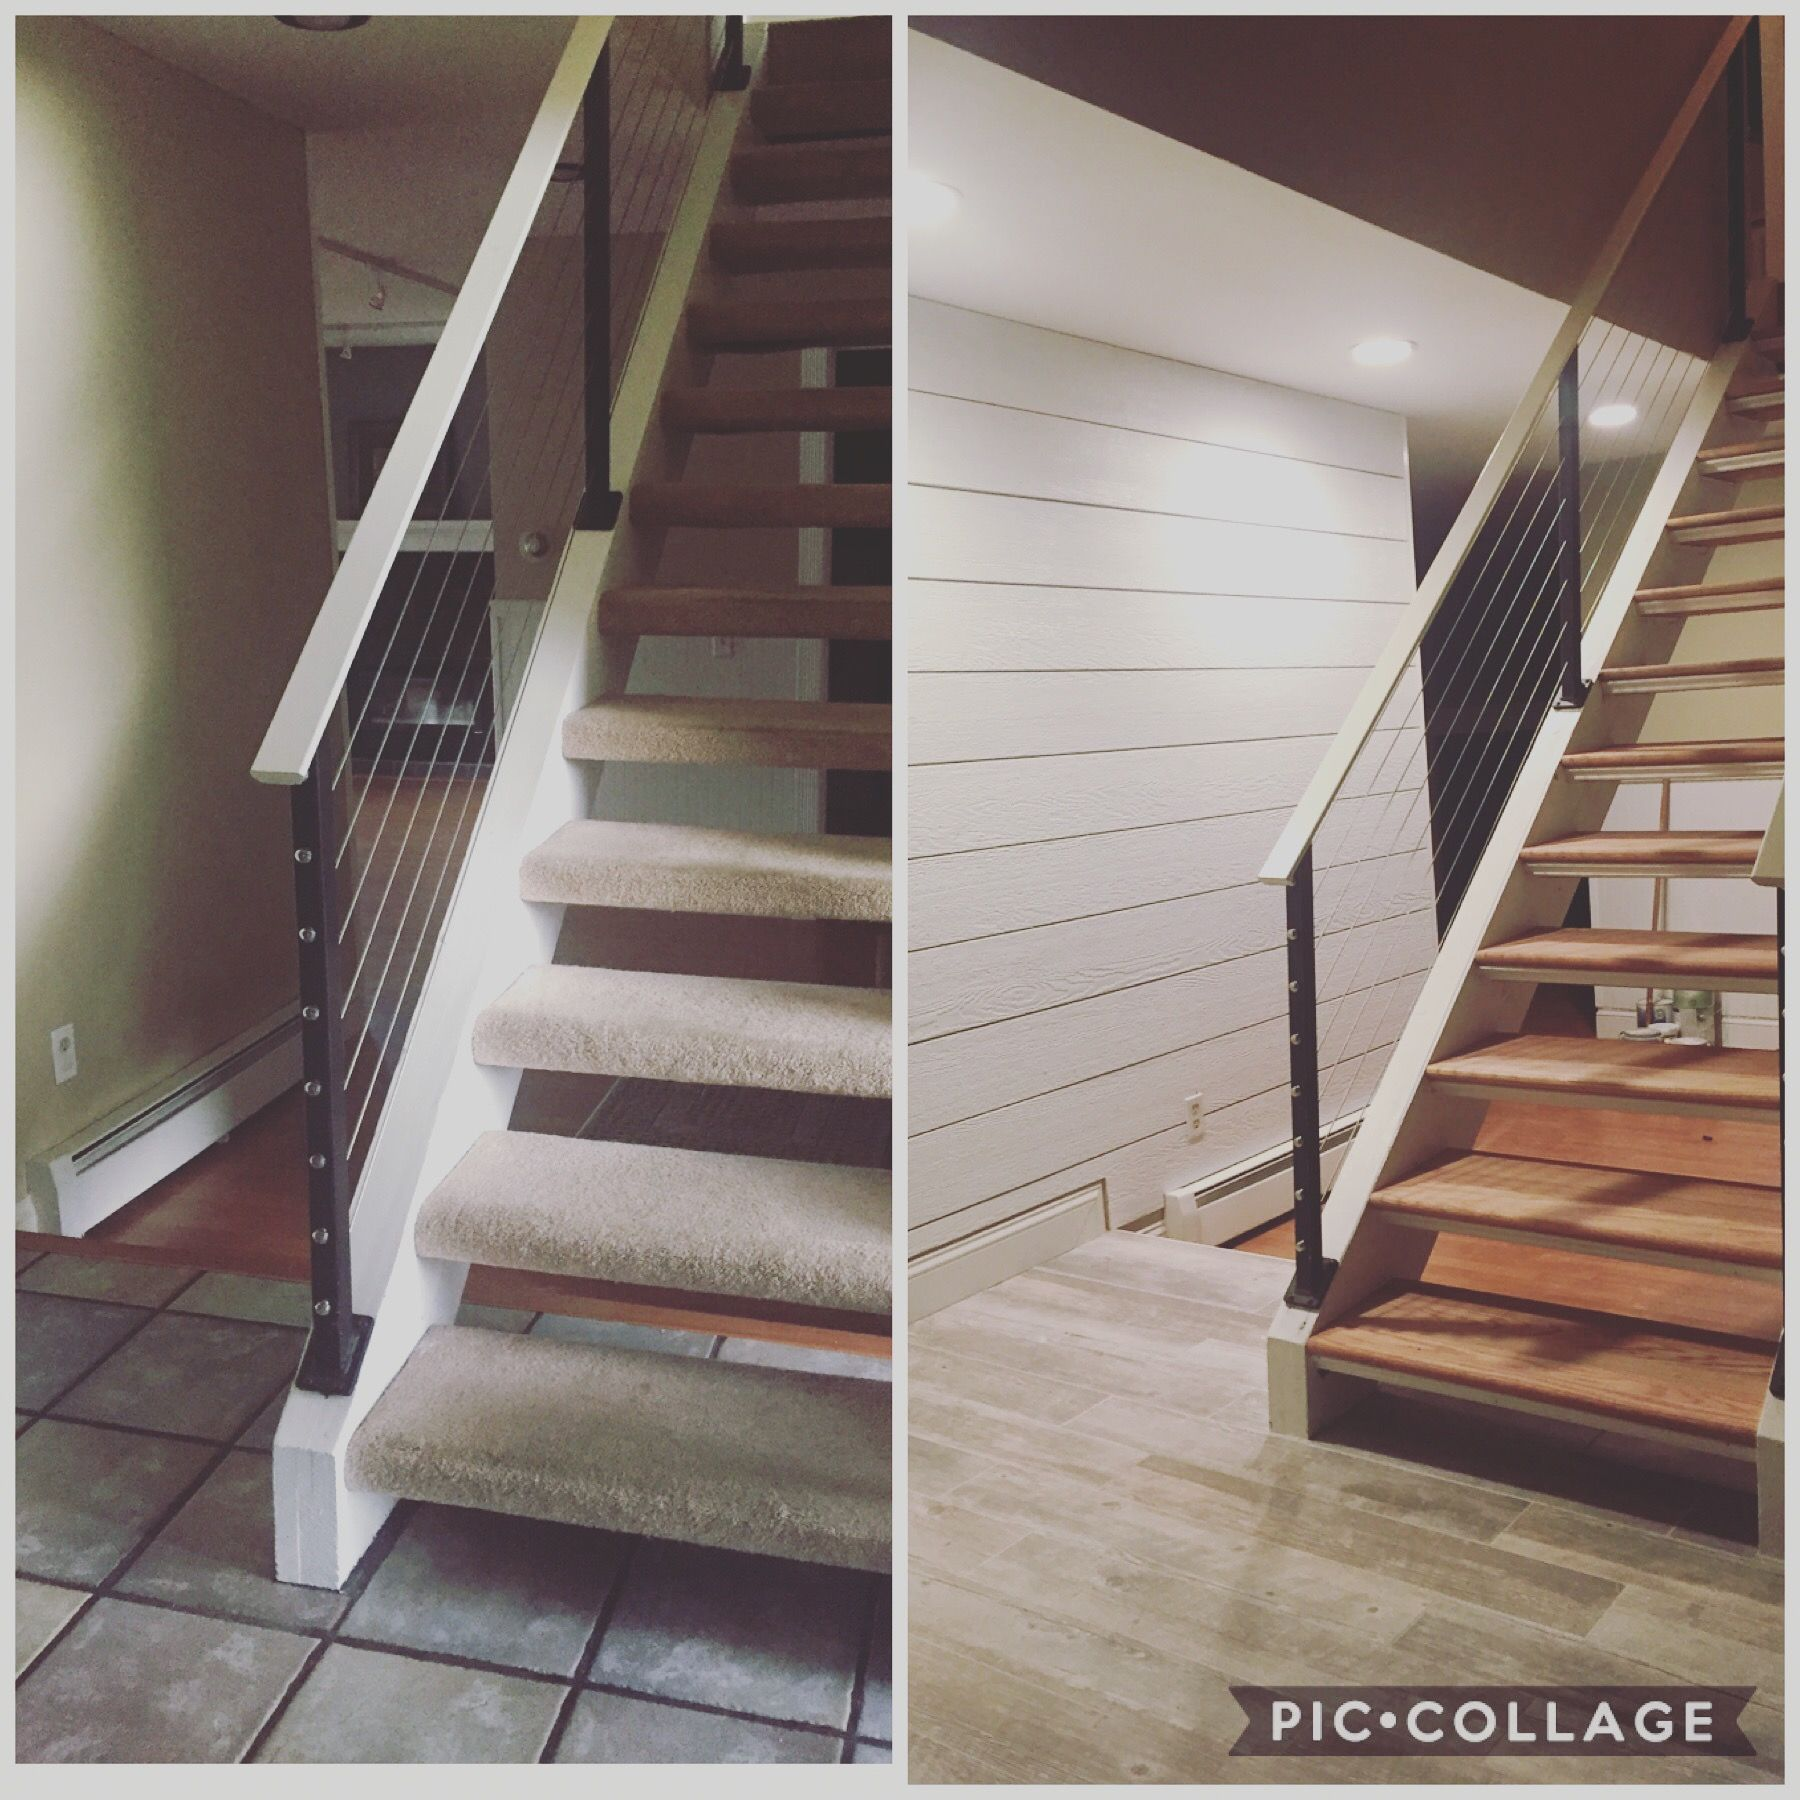 Home Remodel, Floating Stairs, Shiplap Accent Wall And New